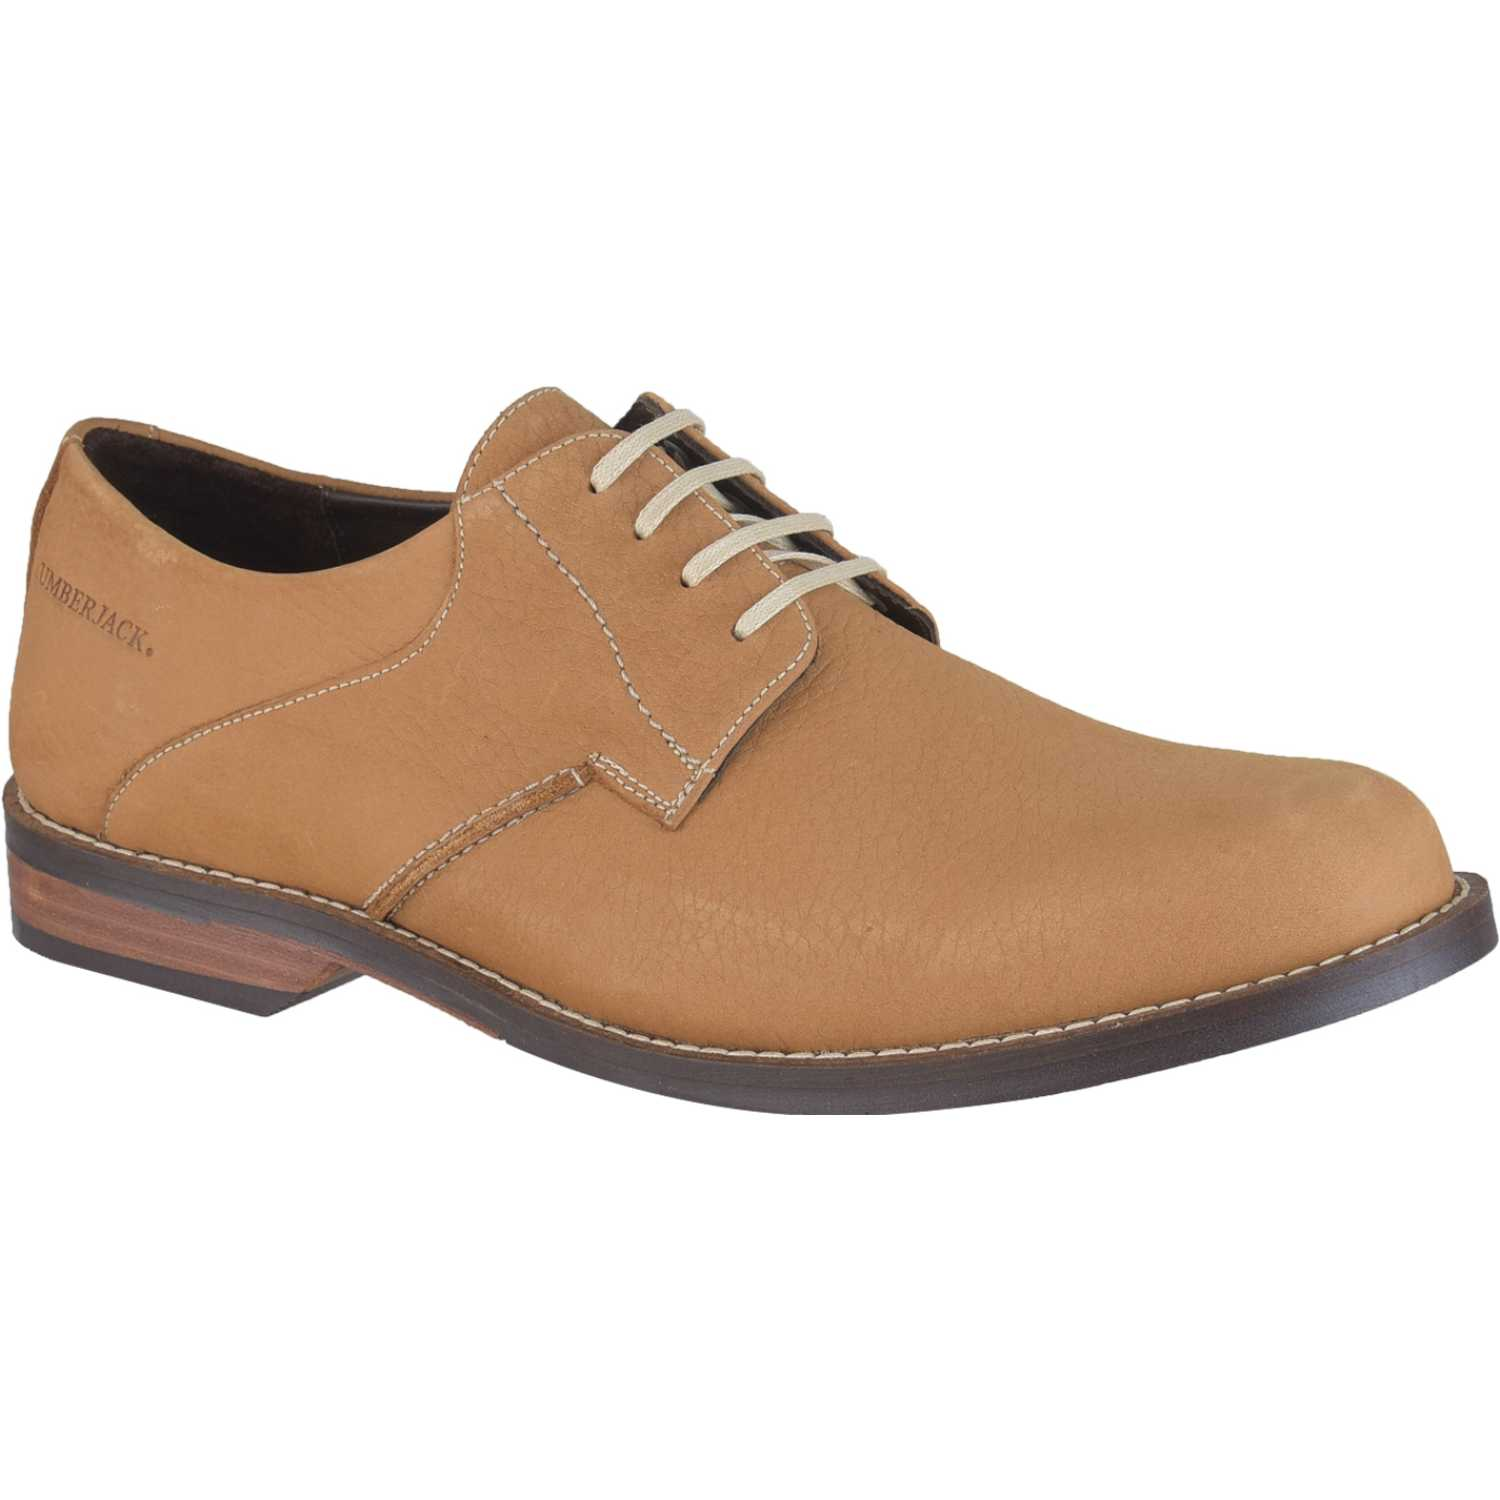 LumberJack 028373-Dad Maiz Oxfords